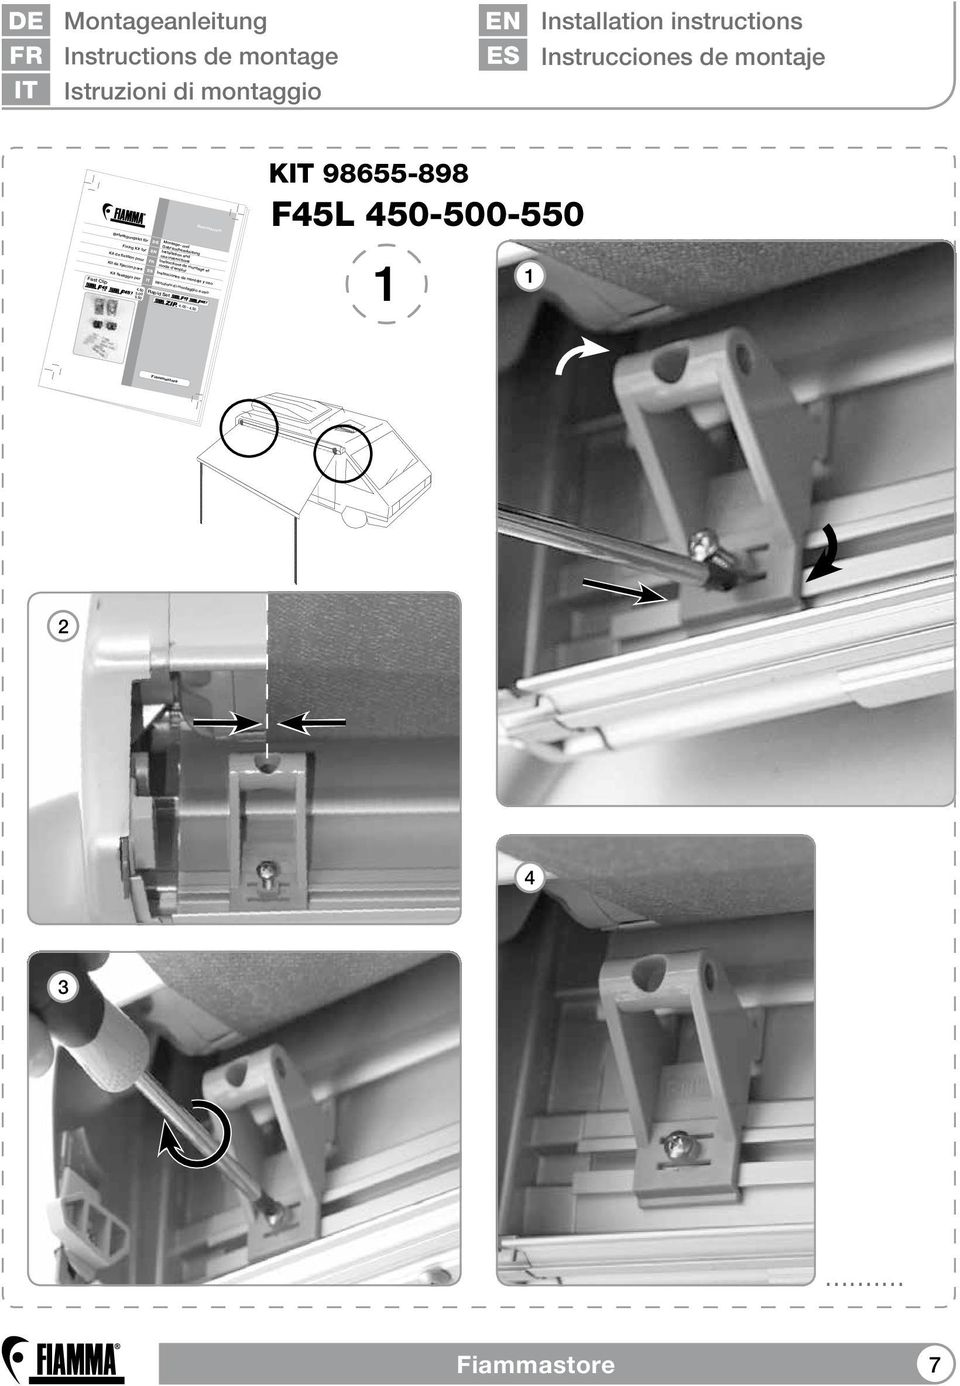 com Montage- und Befestigungskit für Gebrauchsanleitung Installation and Fixing Kit for use instructions Instructions